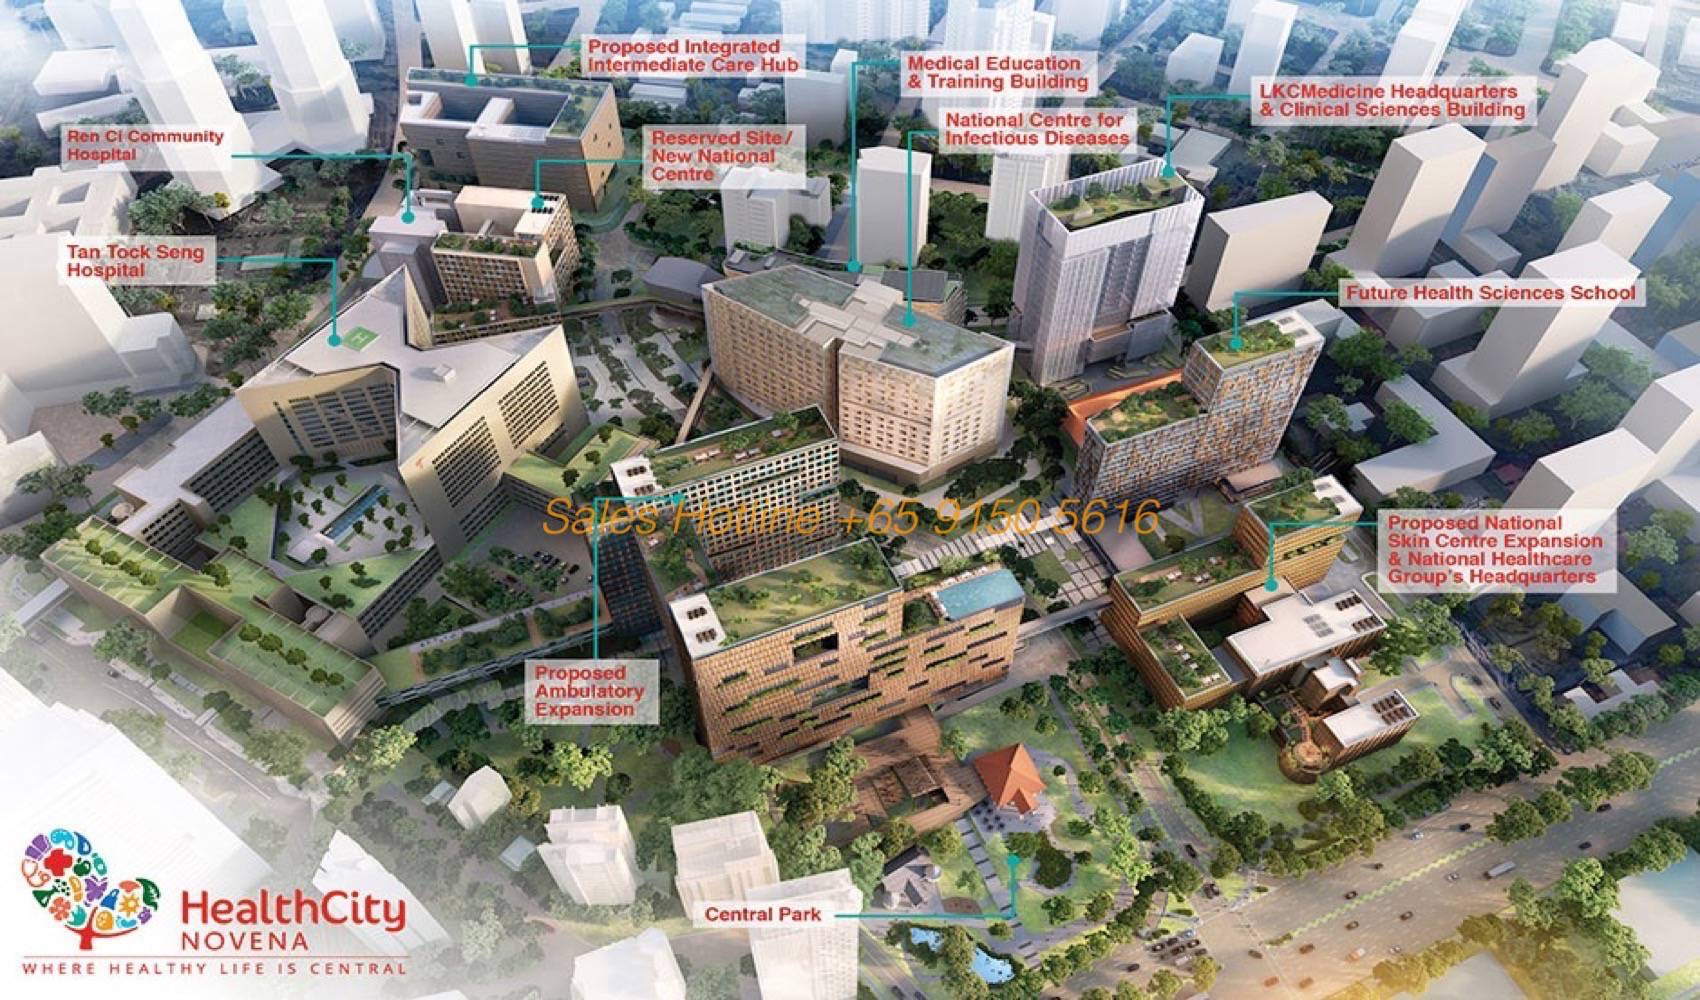 12 on Shan - Health City Novena Masterplan